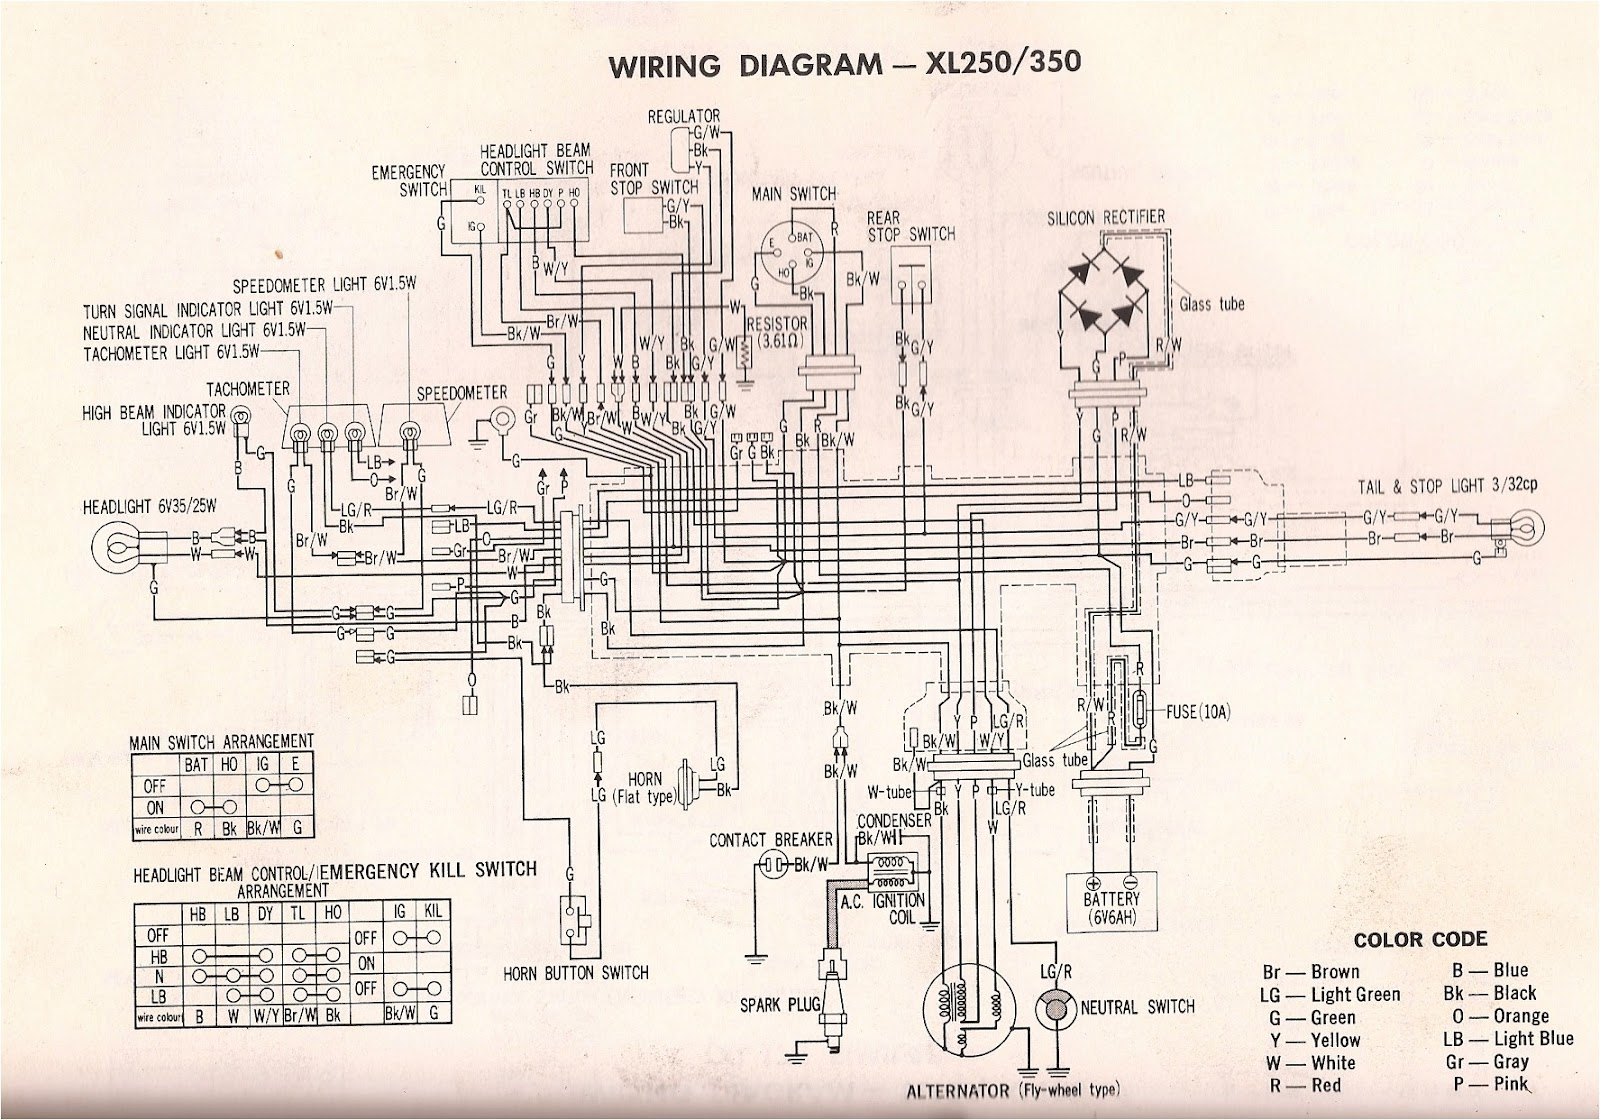 XL350+Wiring+diagram+S r4l xl350 wiring diagram (and xl250) yamaha sr250 wiring diagram at gsmportal.co